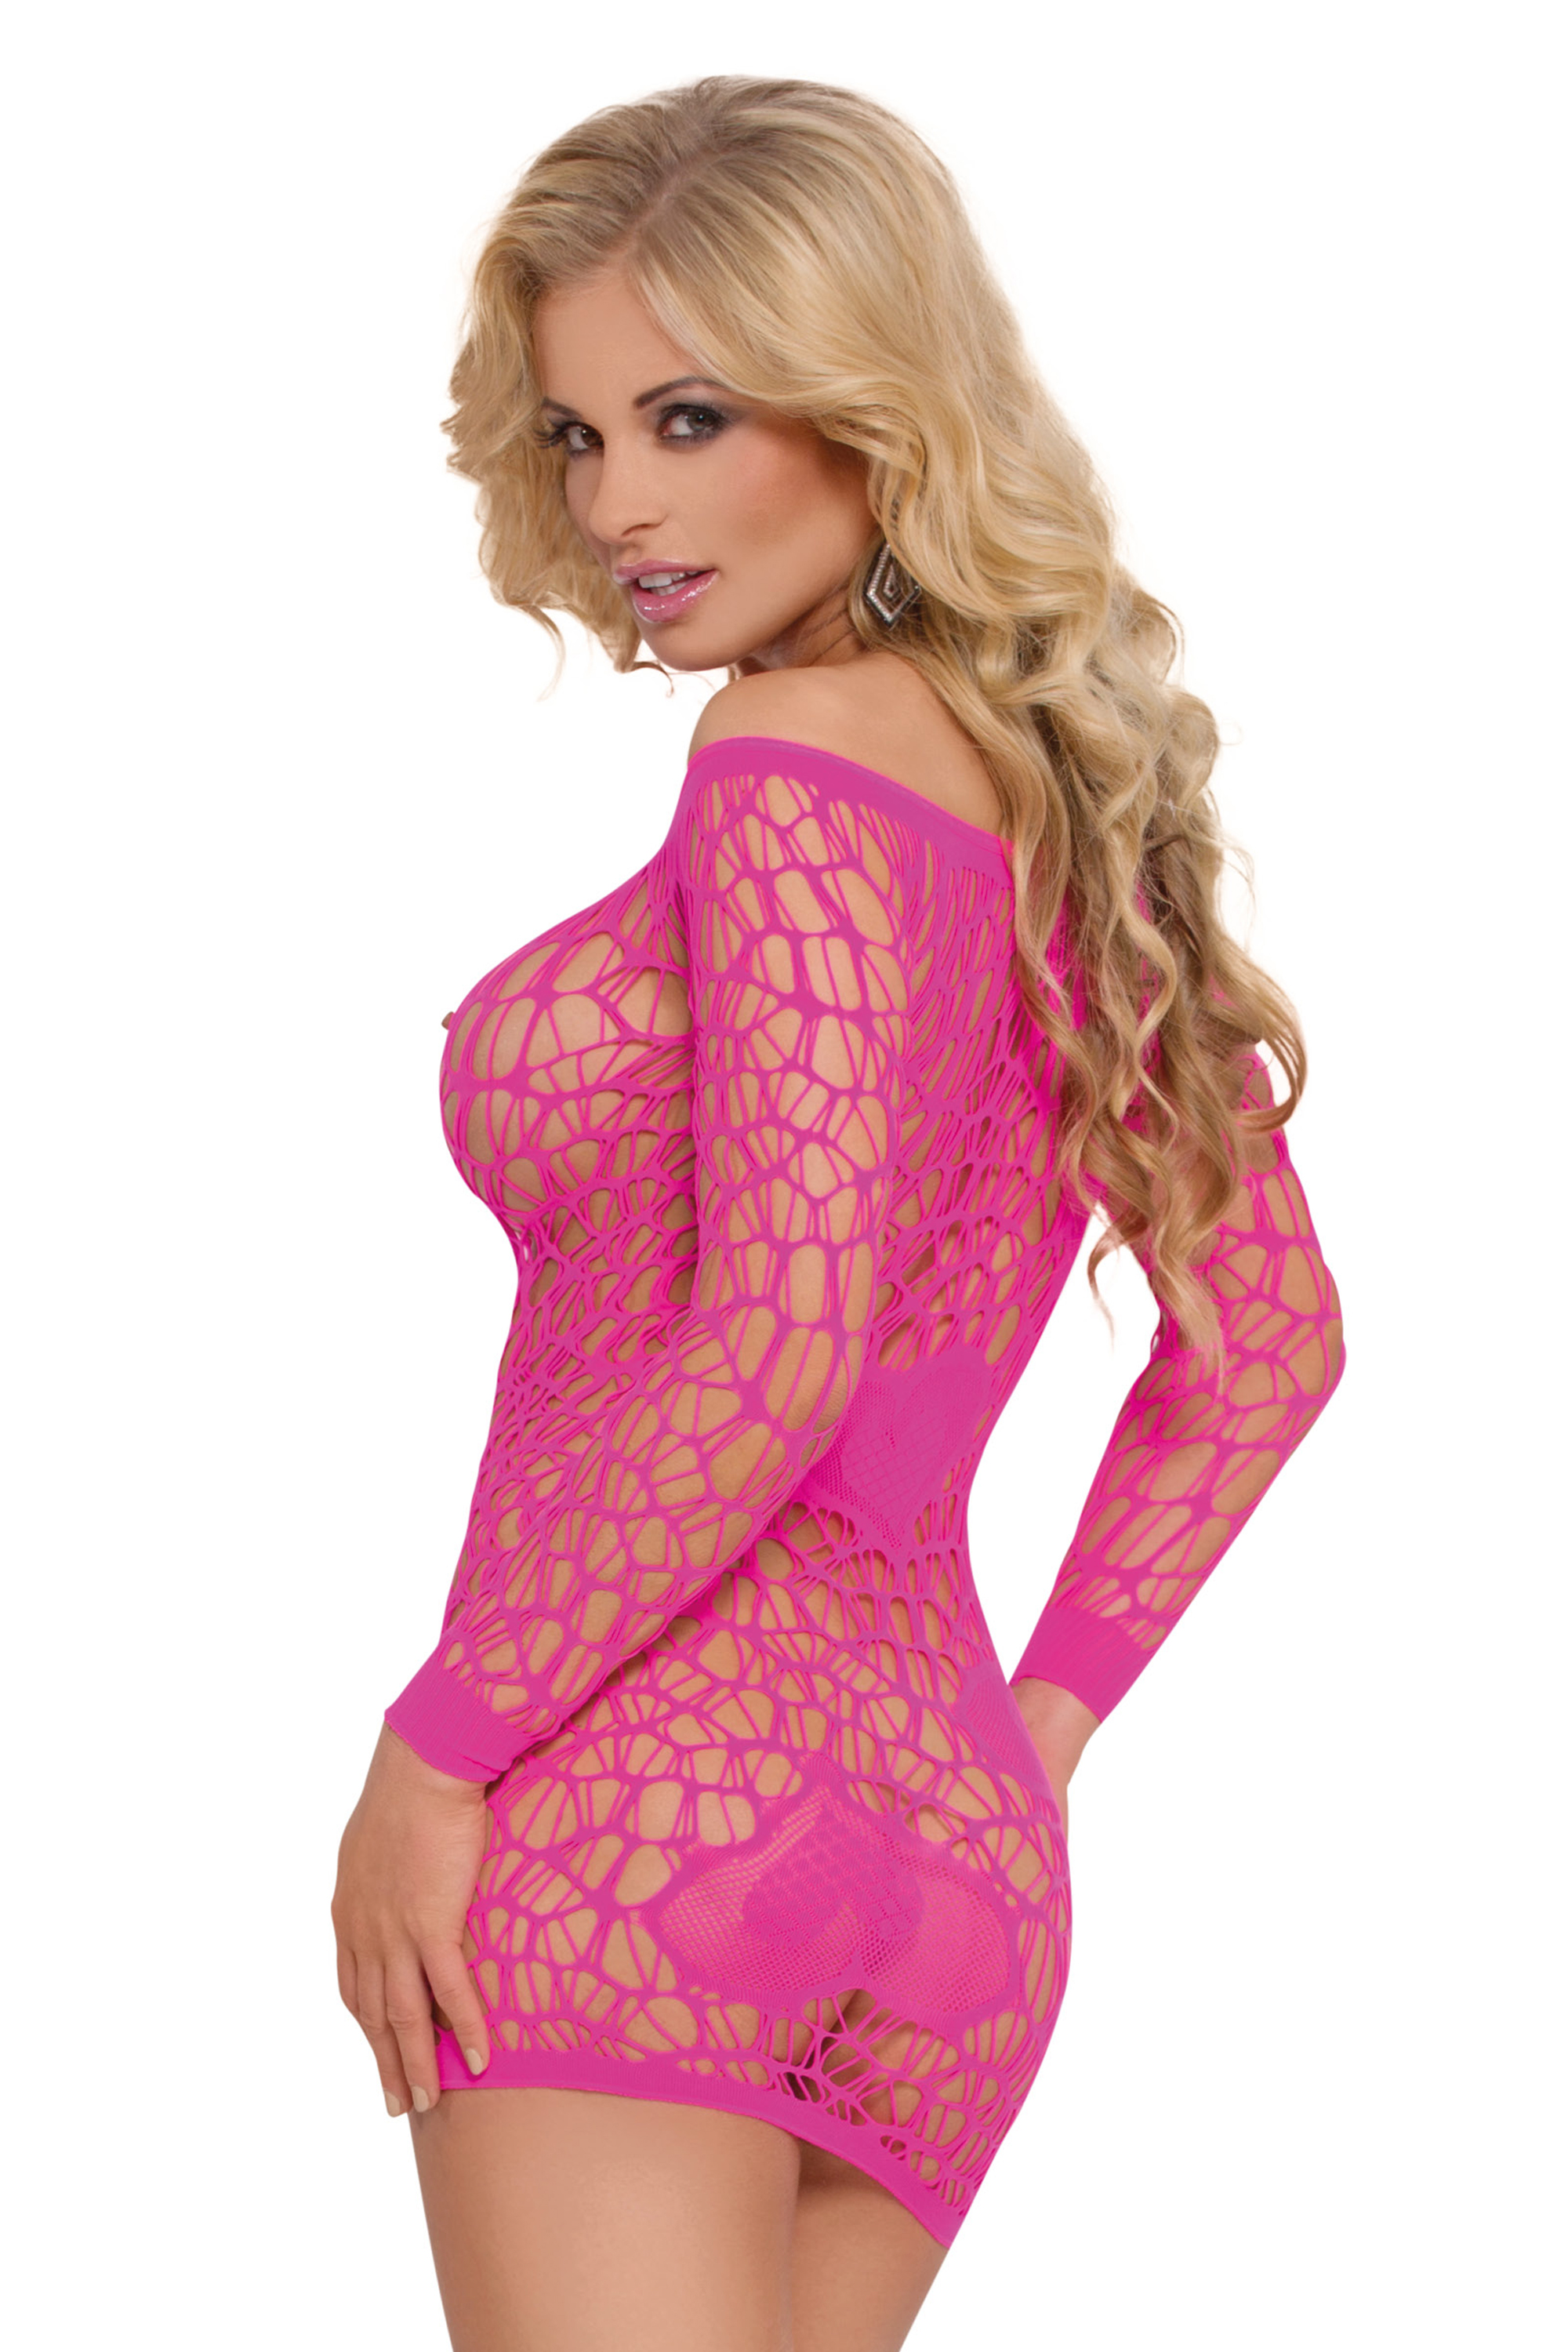 pinkes Netzkleid 6021 von Softline Bodystockings Collection ...